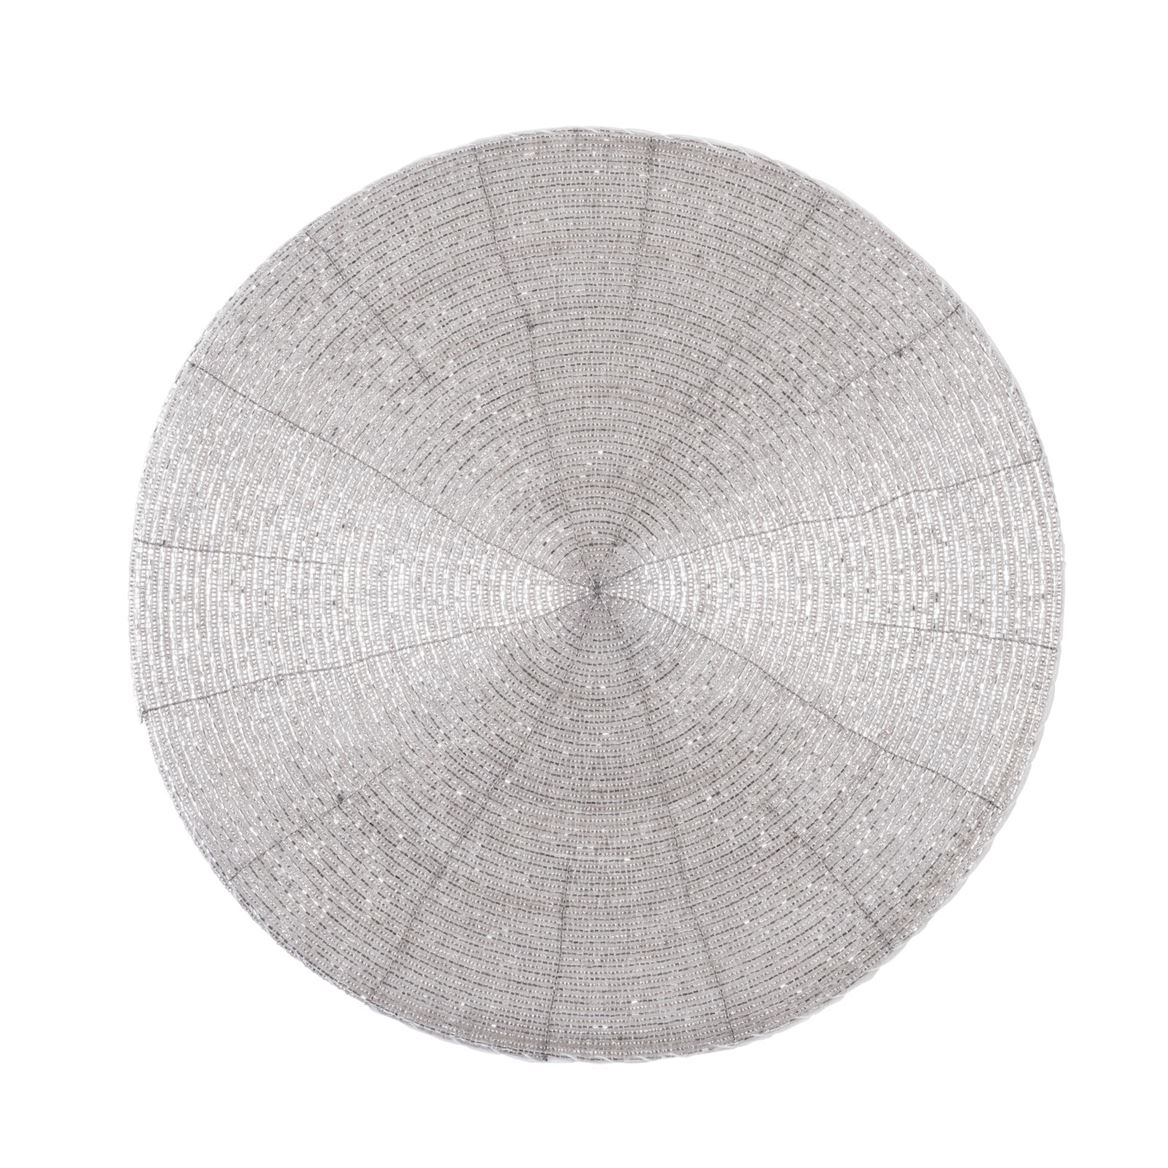 PEARLY ICE Placemat zilver Ø 35 cm_pearly-ice-placemat-zilver-ø-35-cm